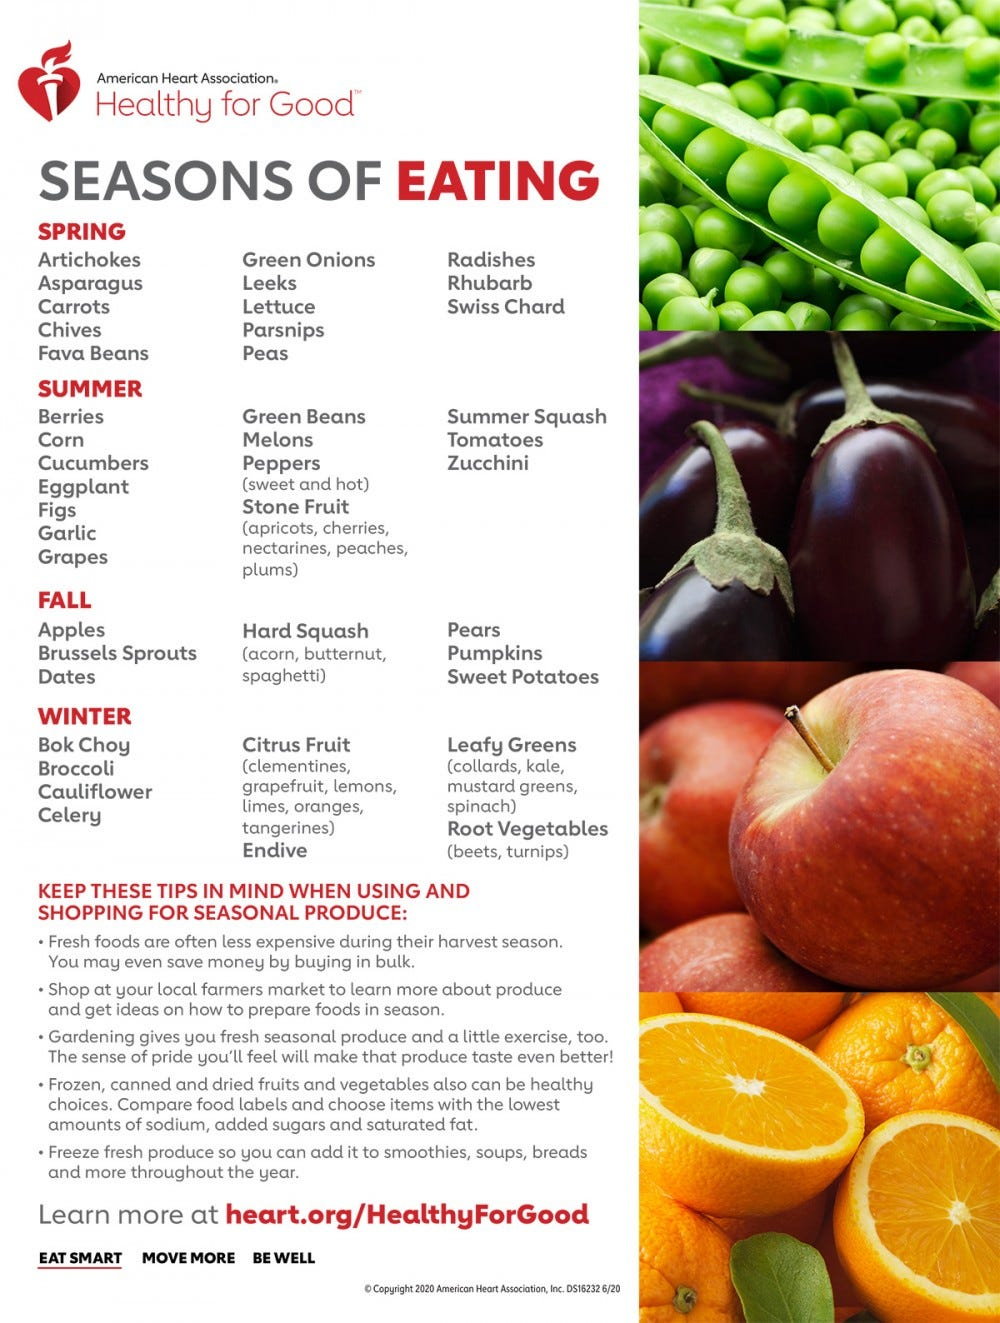 Infographic with fruits and vegetables listed by the season and a few tips for shopping for seasonal produce